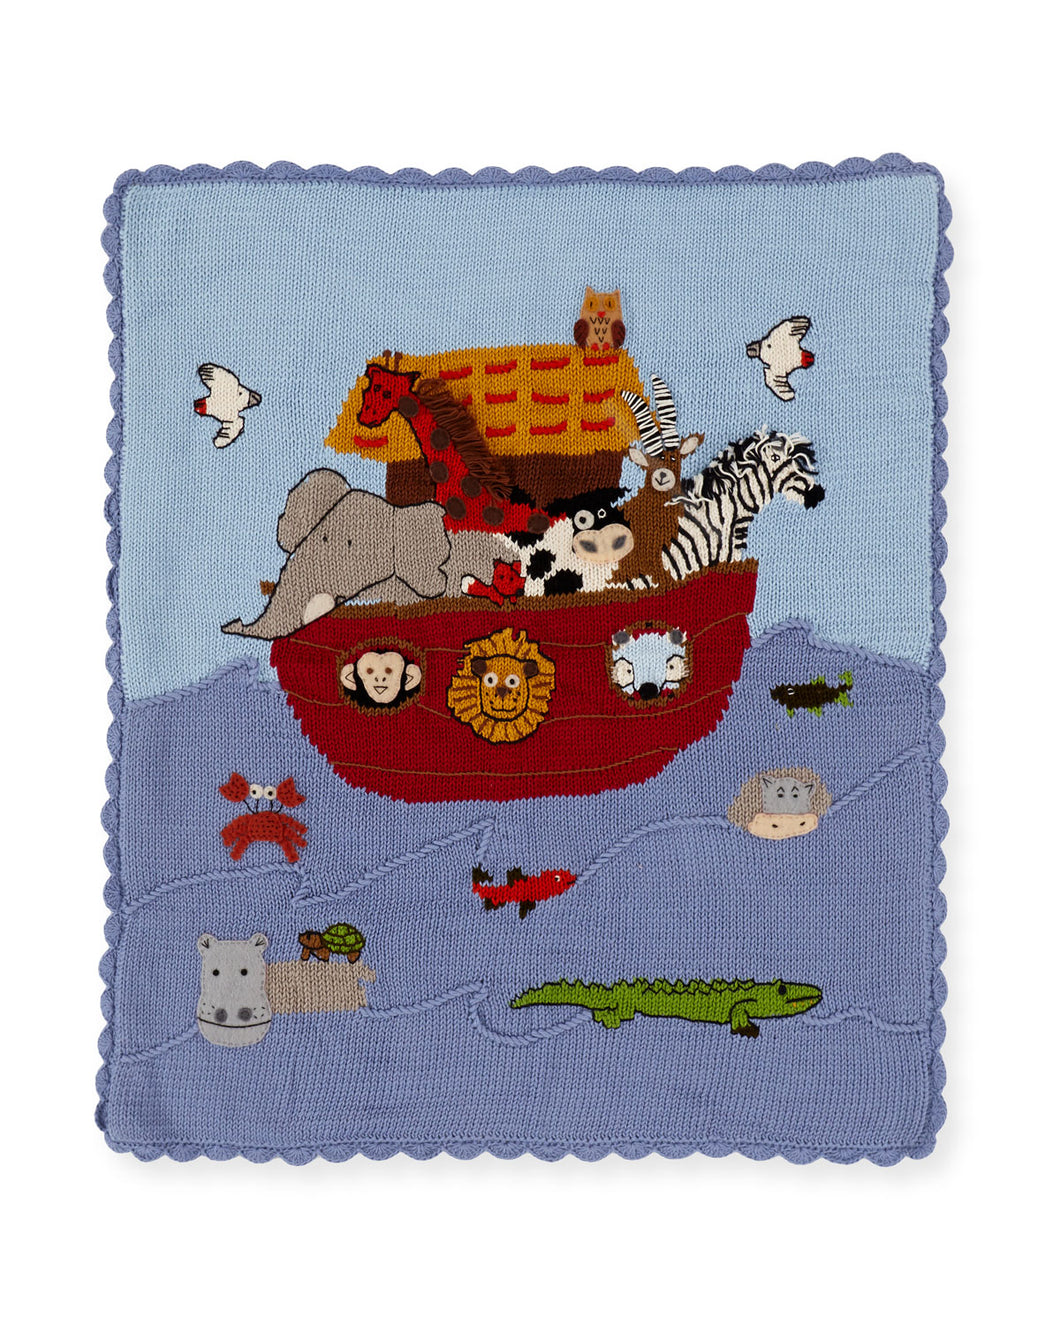 Noah's Ark Blanket in Blue